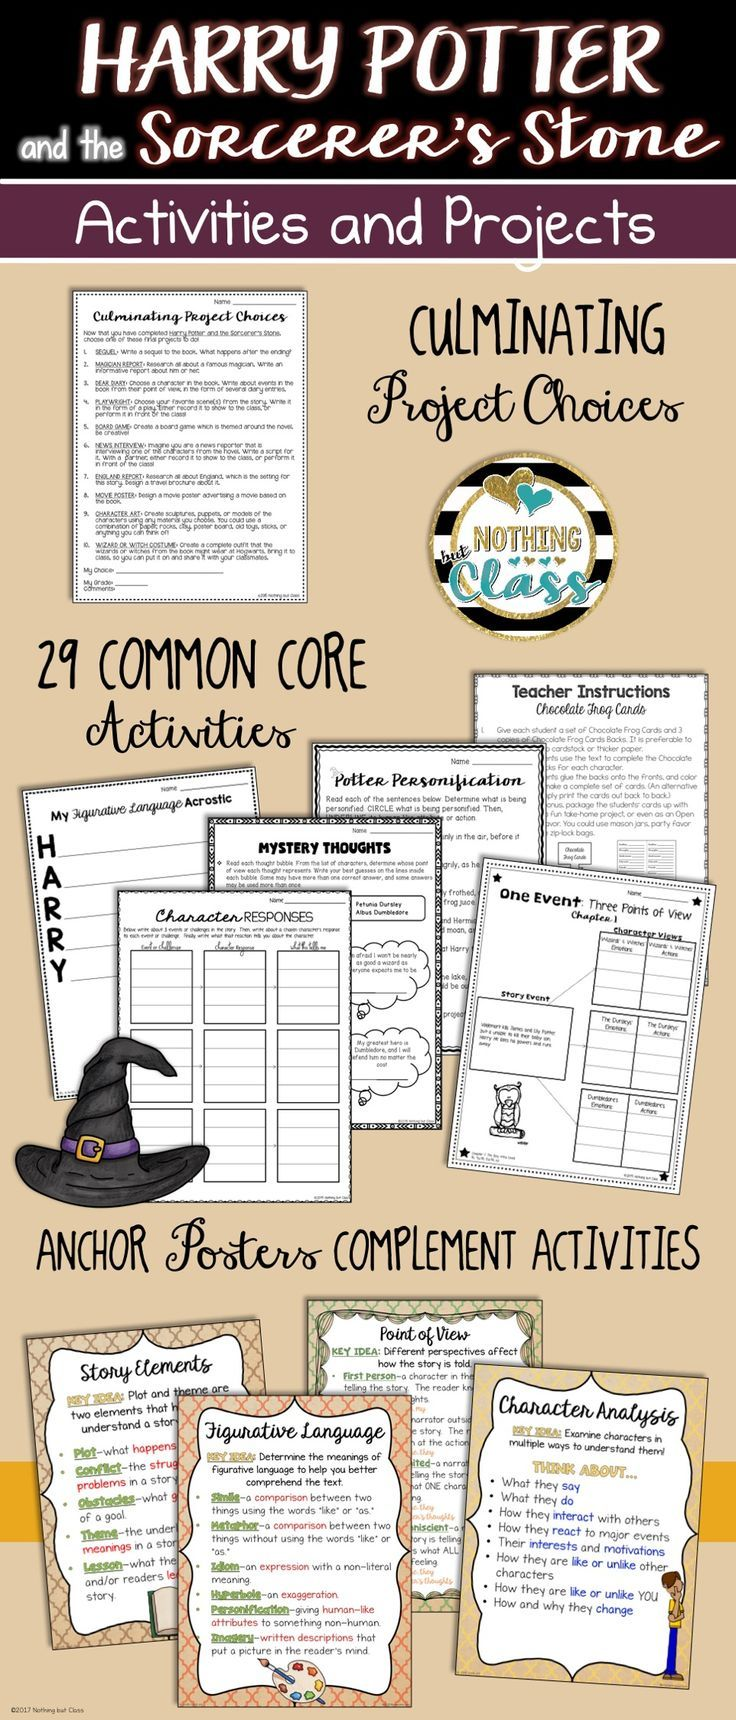 Harry Potter And The Sorcerer S Stone Activities And Projects